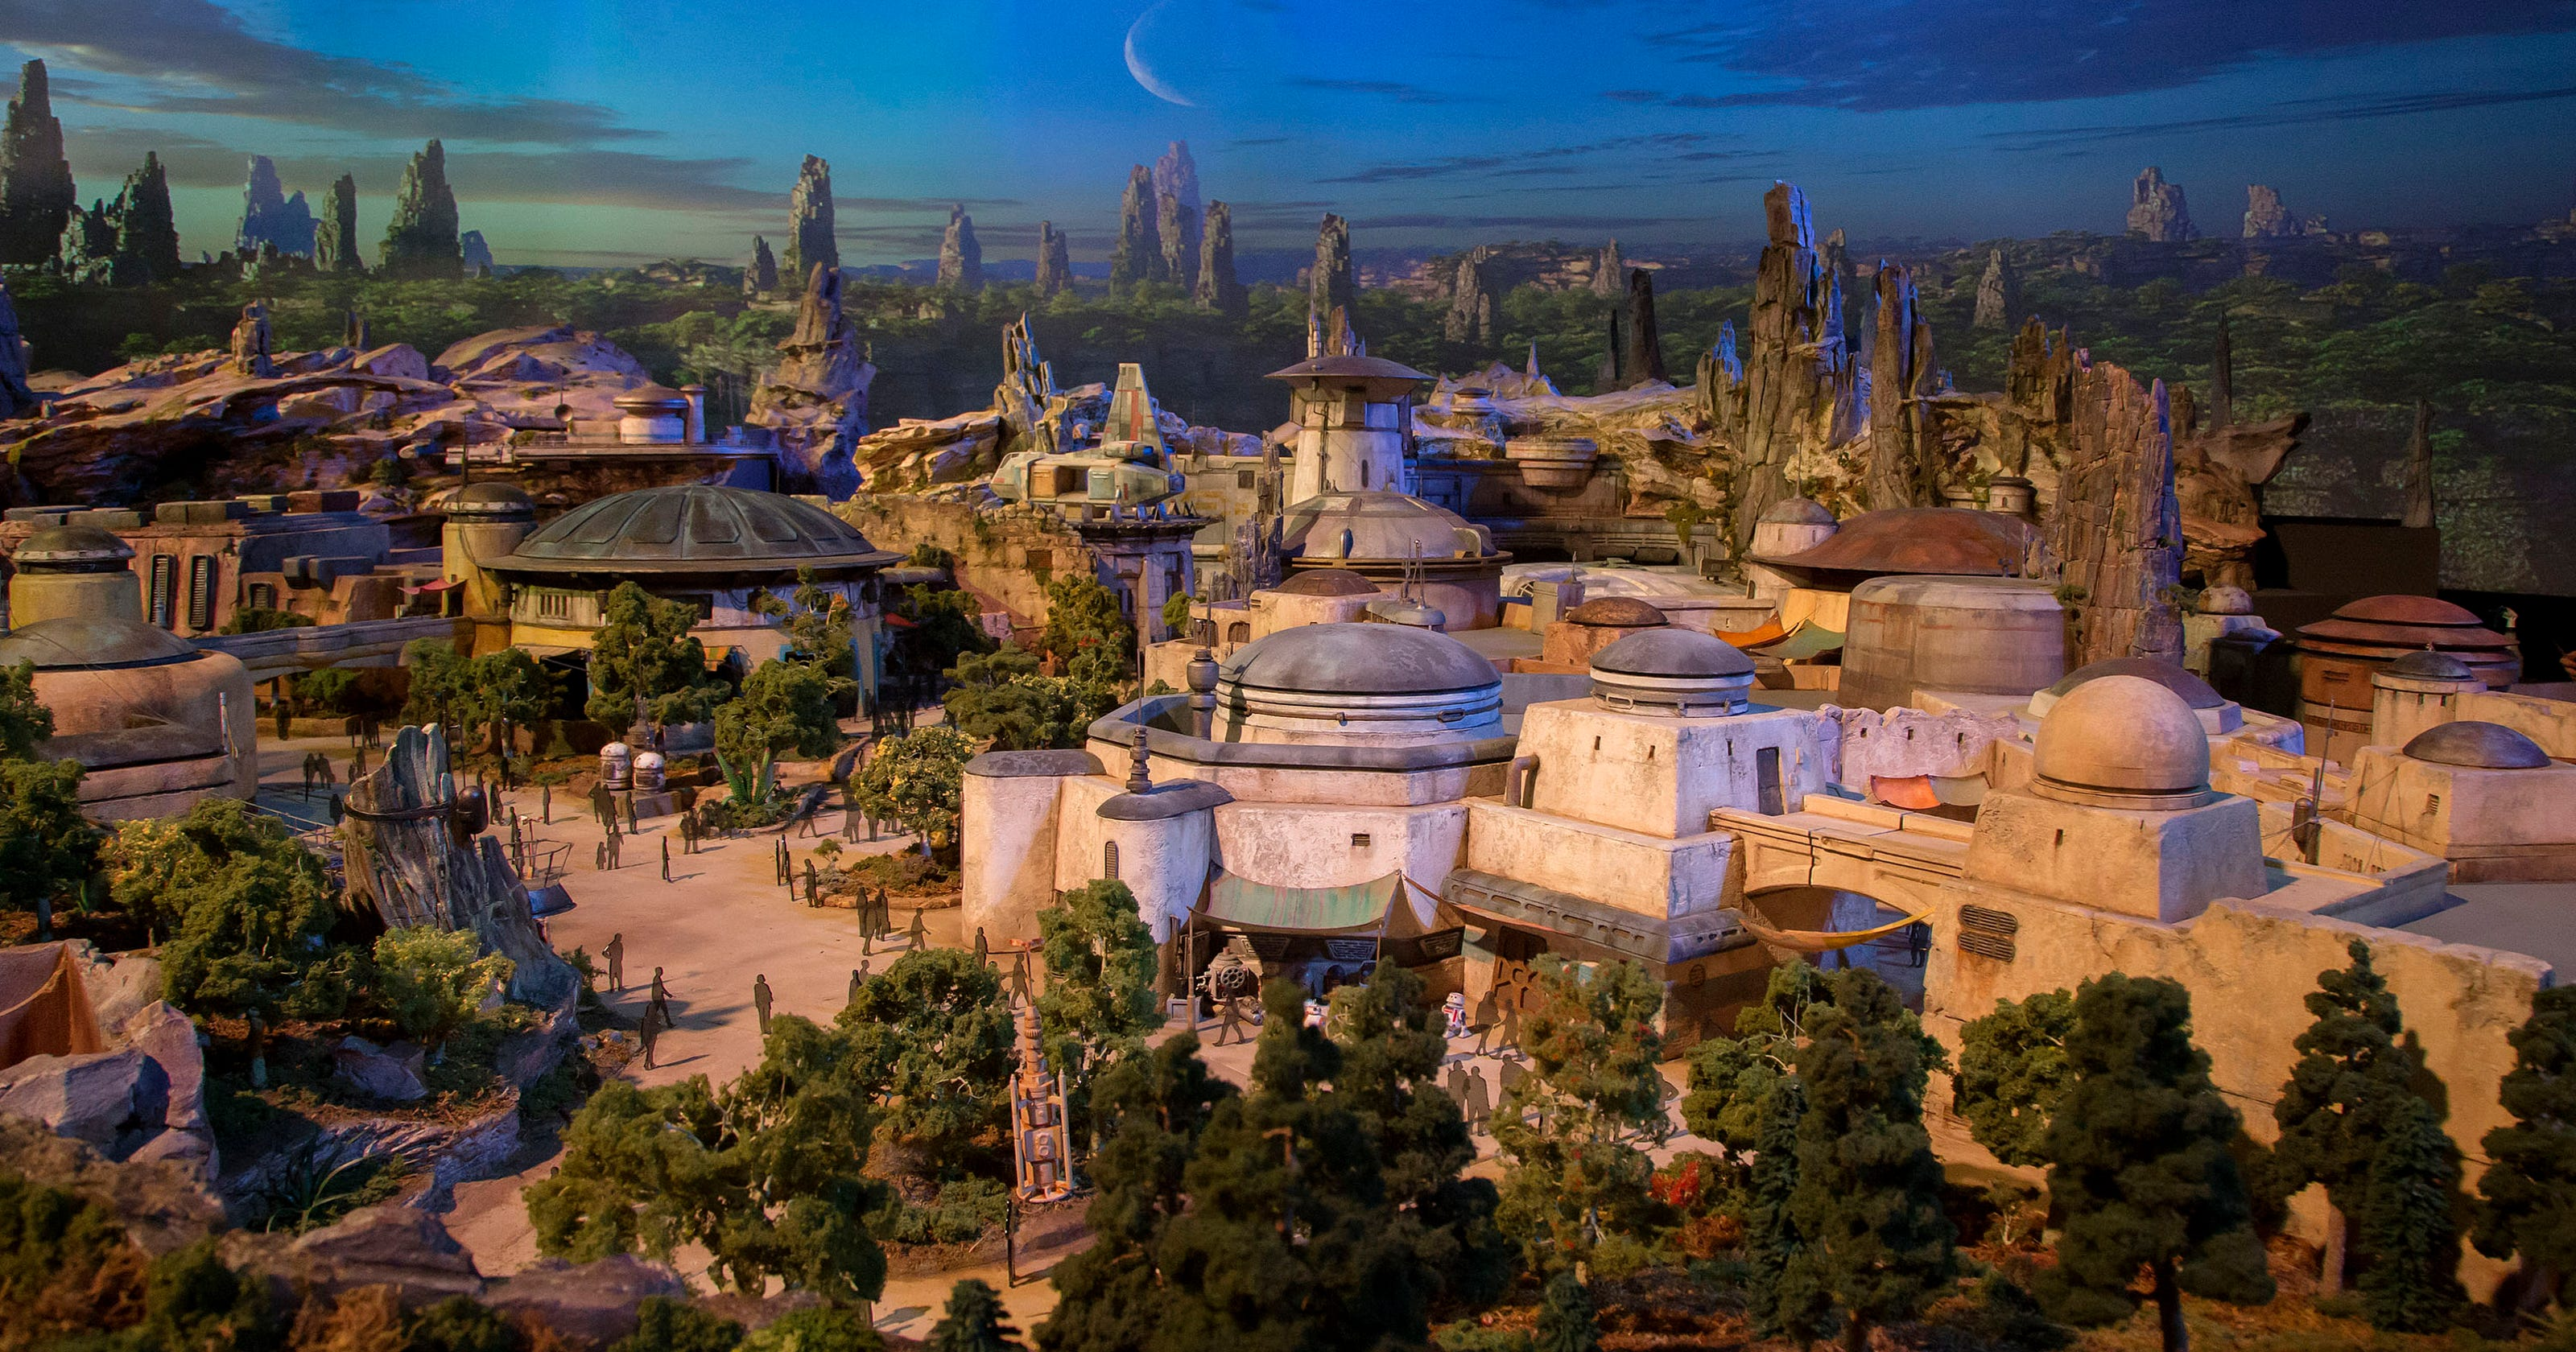 26ed9123d329 Star Wars-themed land to open in summer 2019 at Disneyland